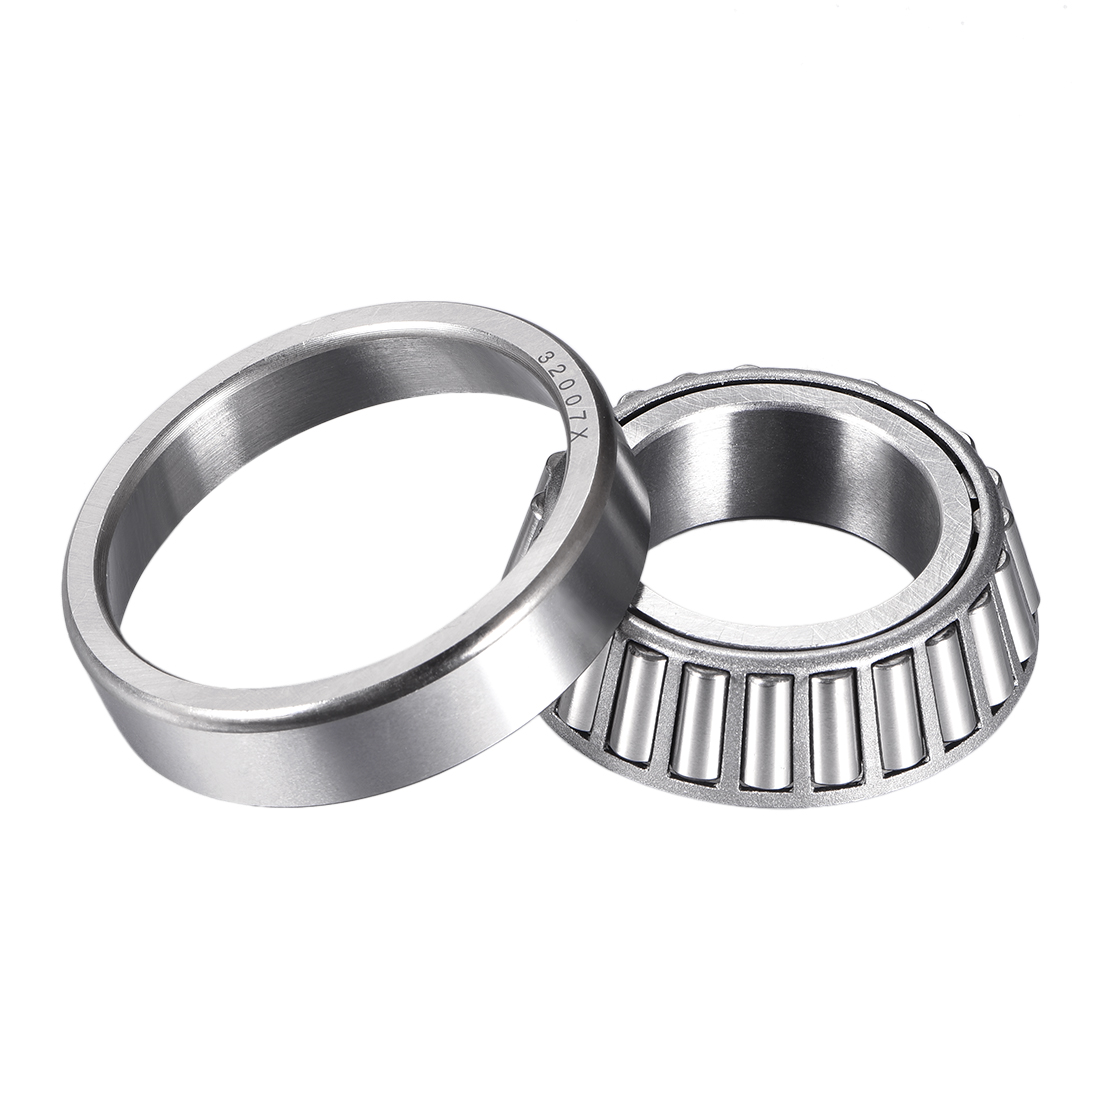 32007X Tapered Roller Bearing Cone with Cup, 35x62x18mm for Freight Trailer